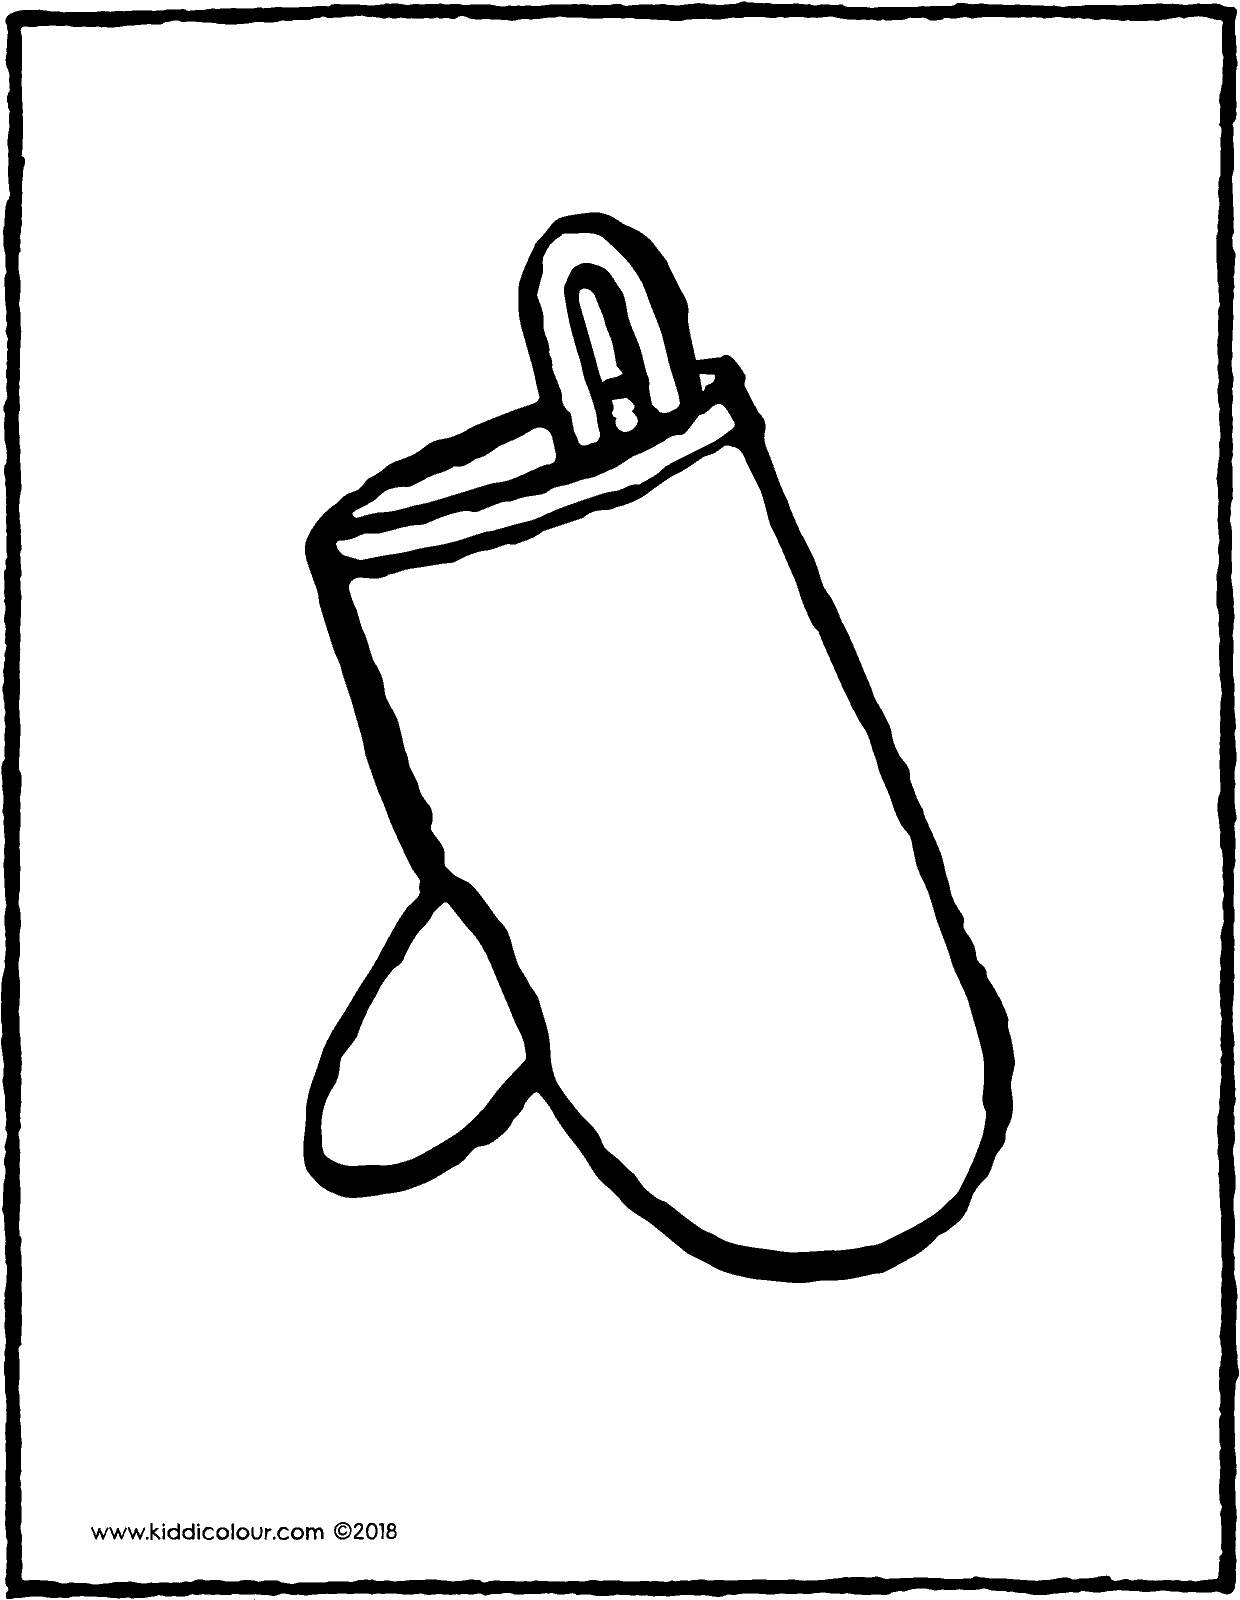 oven glove colouring page drawing picture 01V